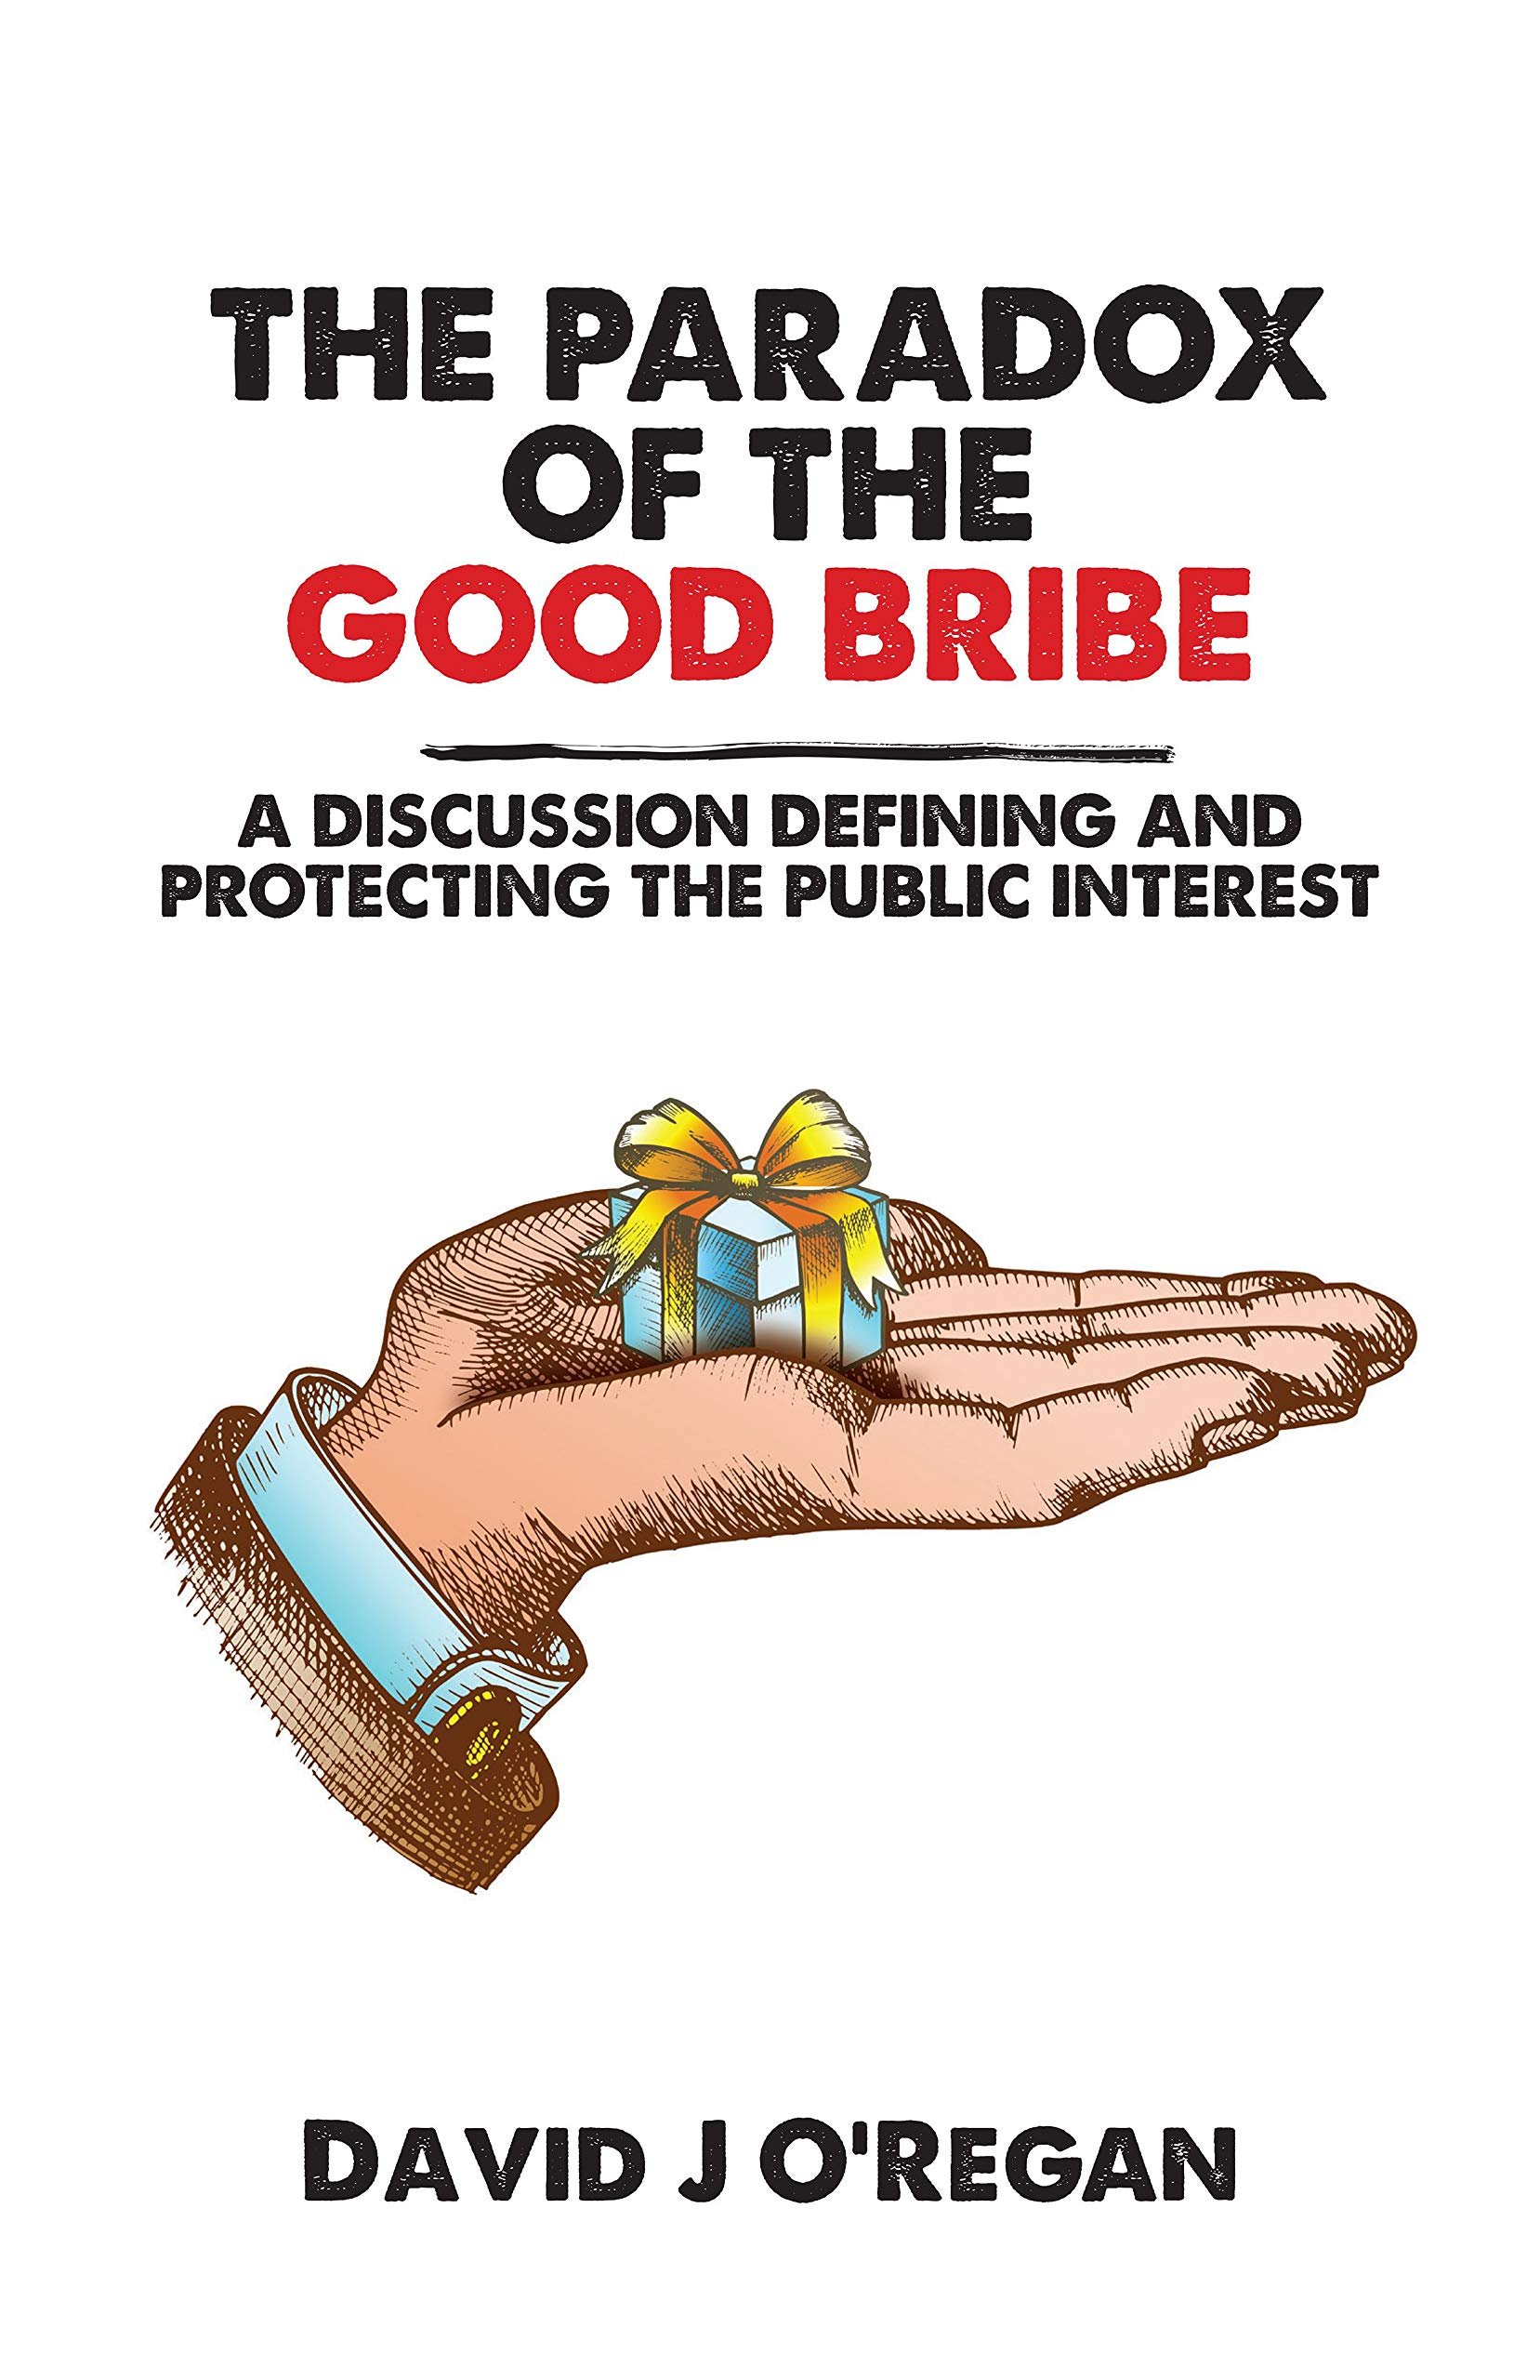 The Paradox of the Good Bribe: A Discussion Defining and Protecting the Public Interest